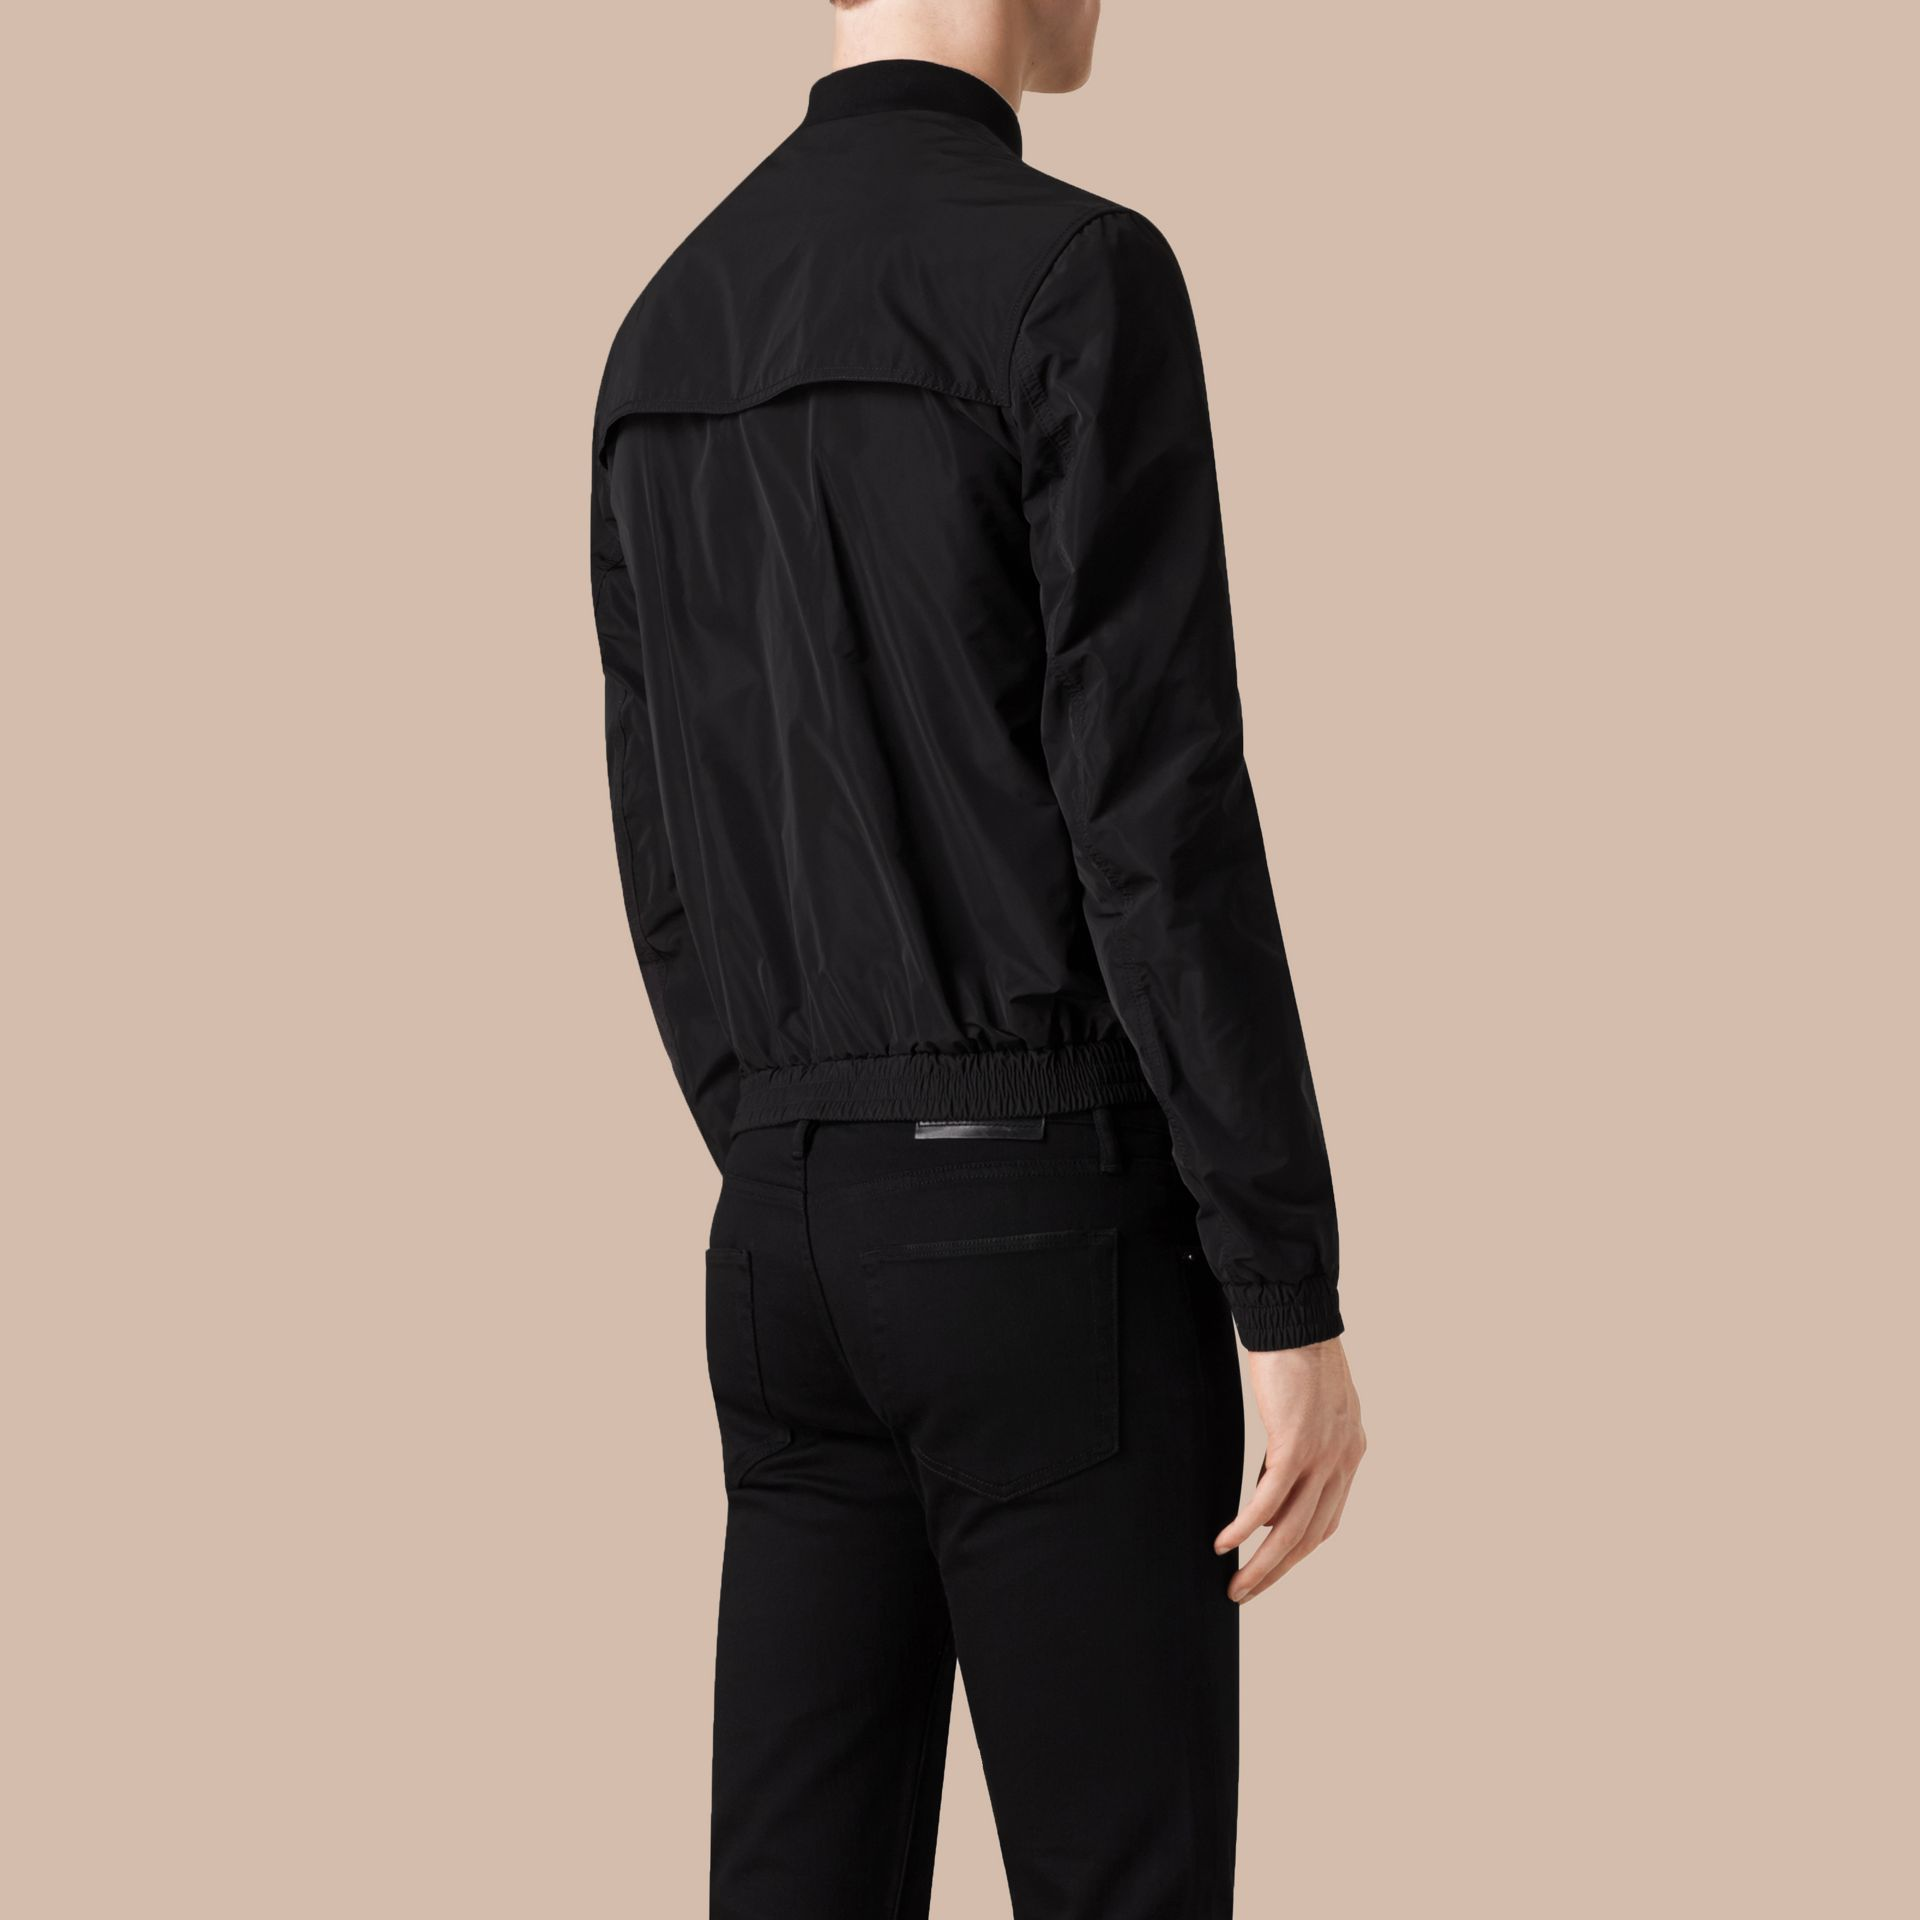 Black Showerproof Bomber Jacket Black - gallery image 3